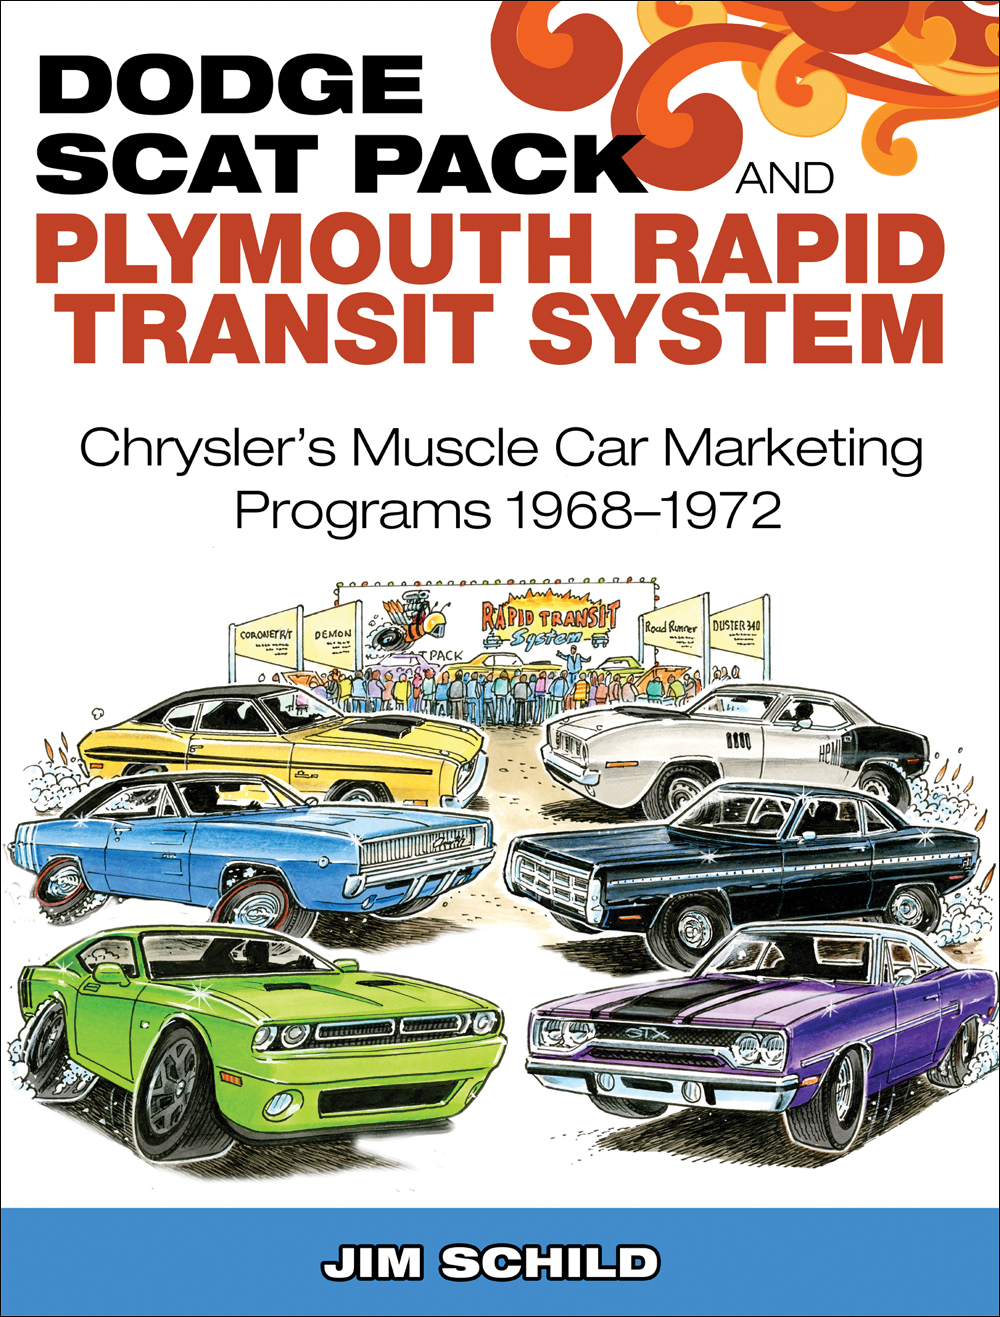 1968-1972 Dodge Scat Pack and Plymouth Rapid Transit System Program History